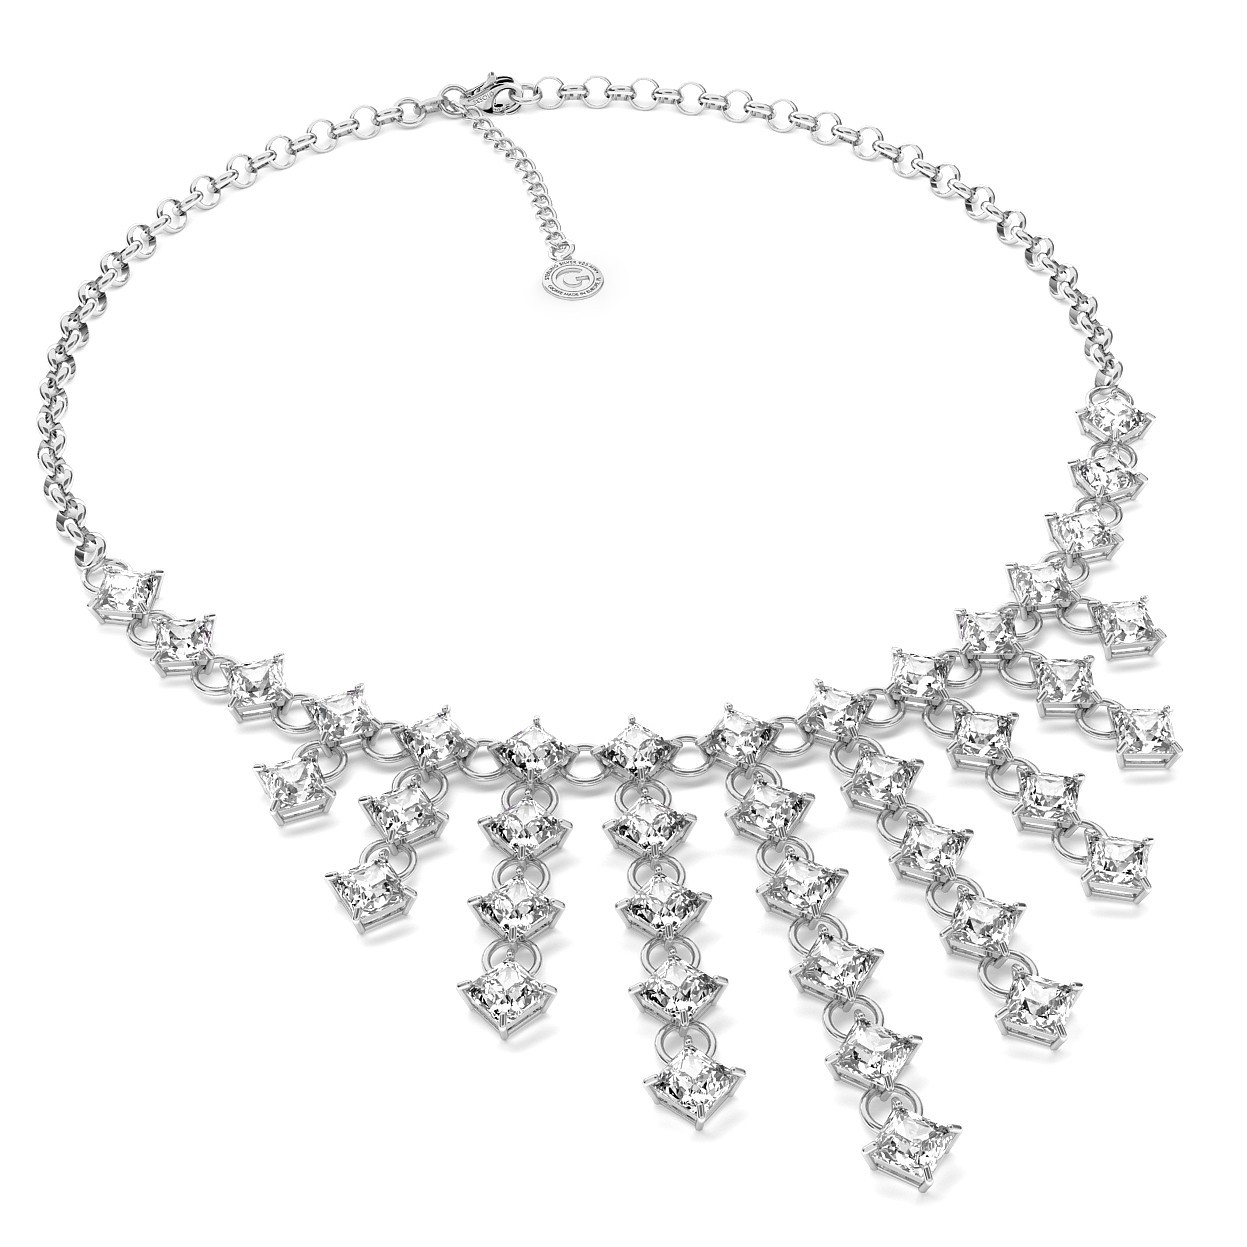 NECKLACE WITH ZIRCONS, WEDDING JEWELLERY - MODEL 1